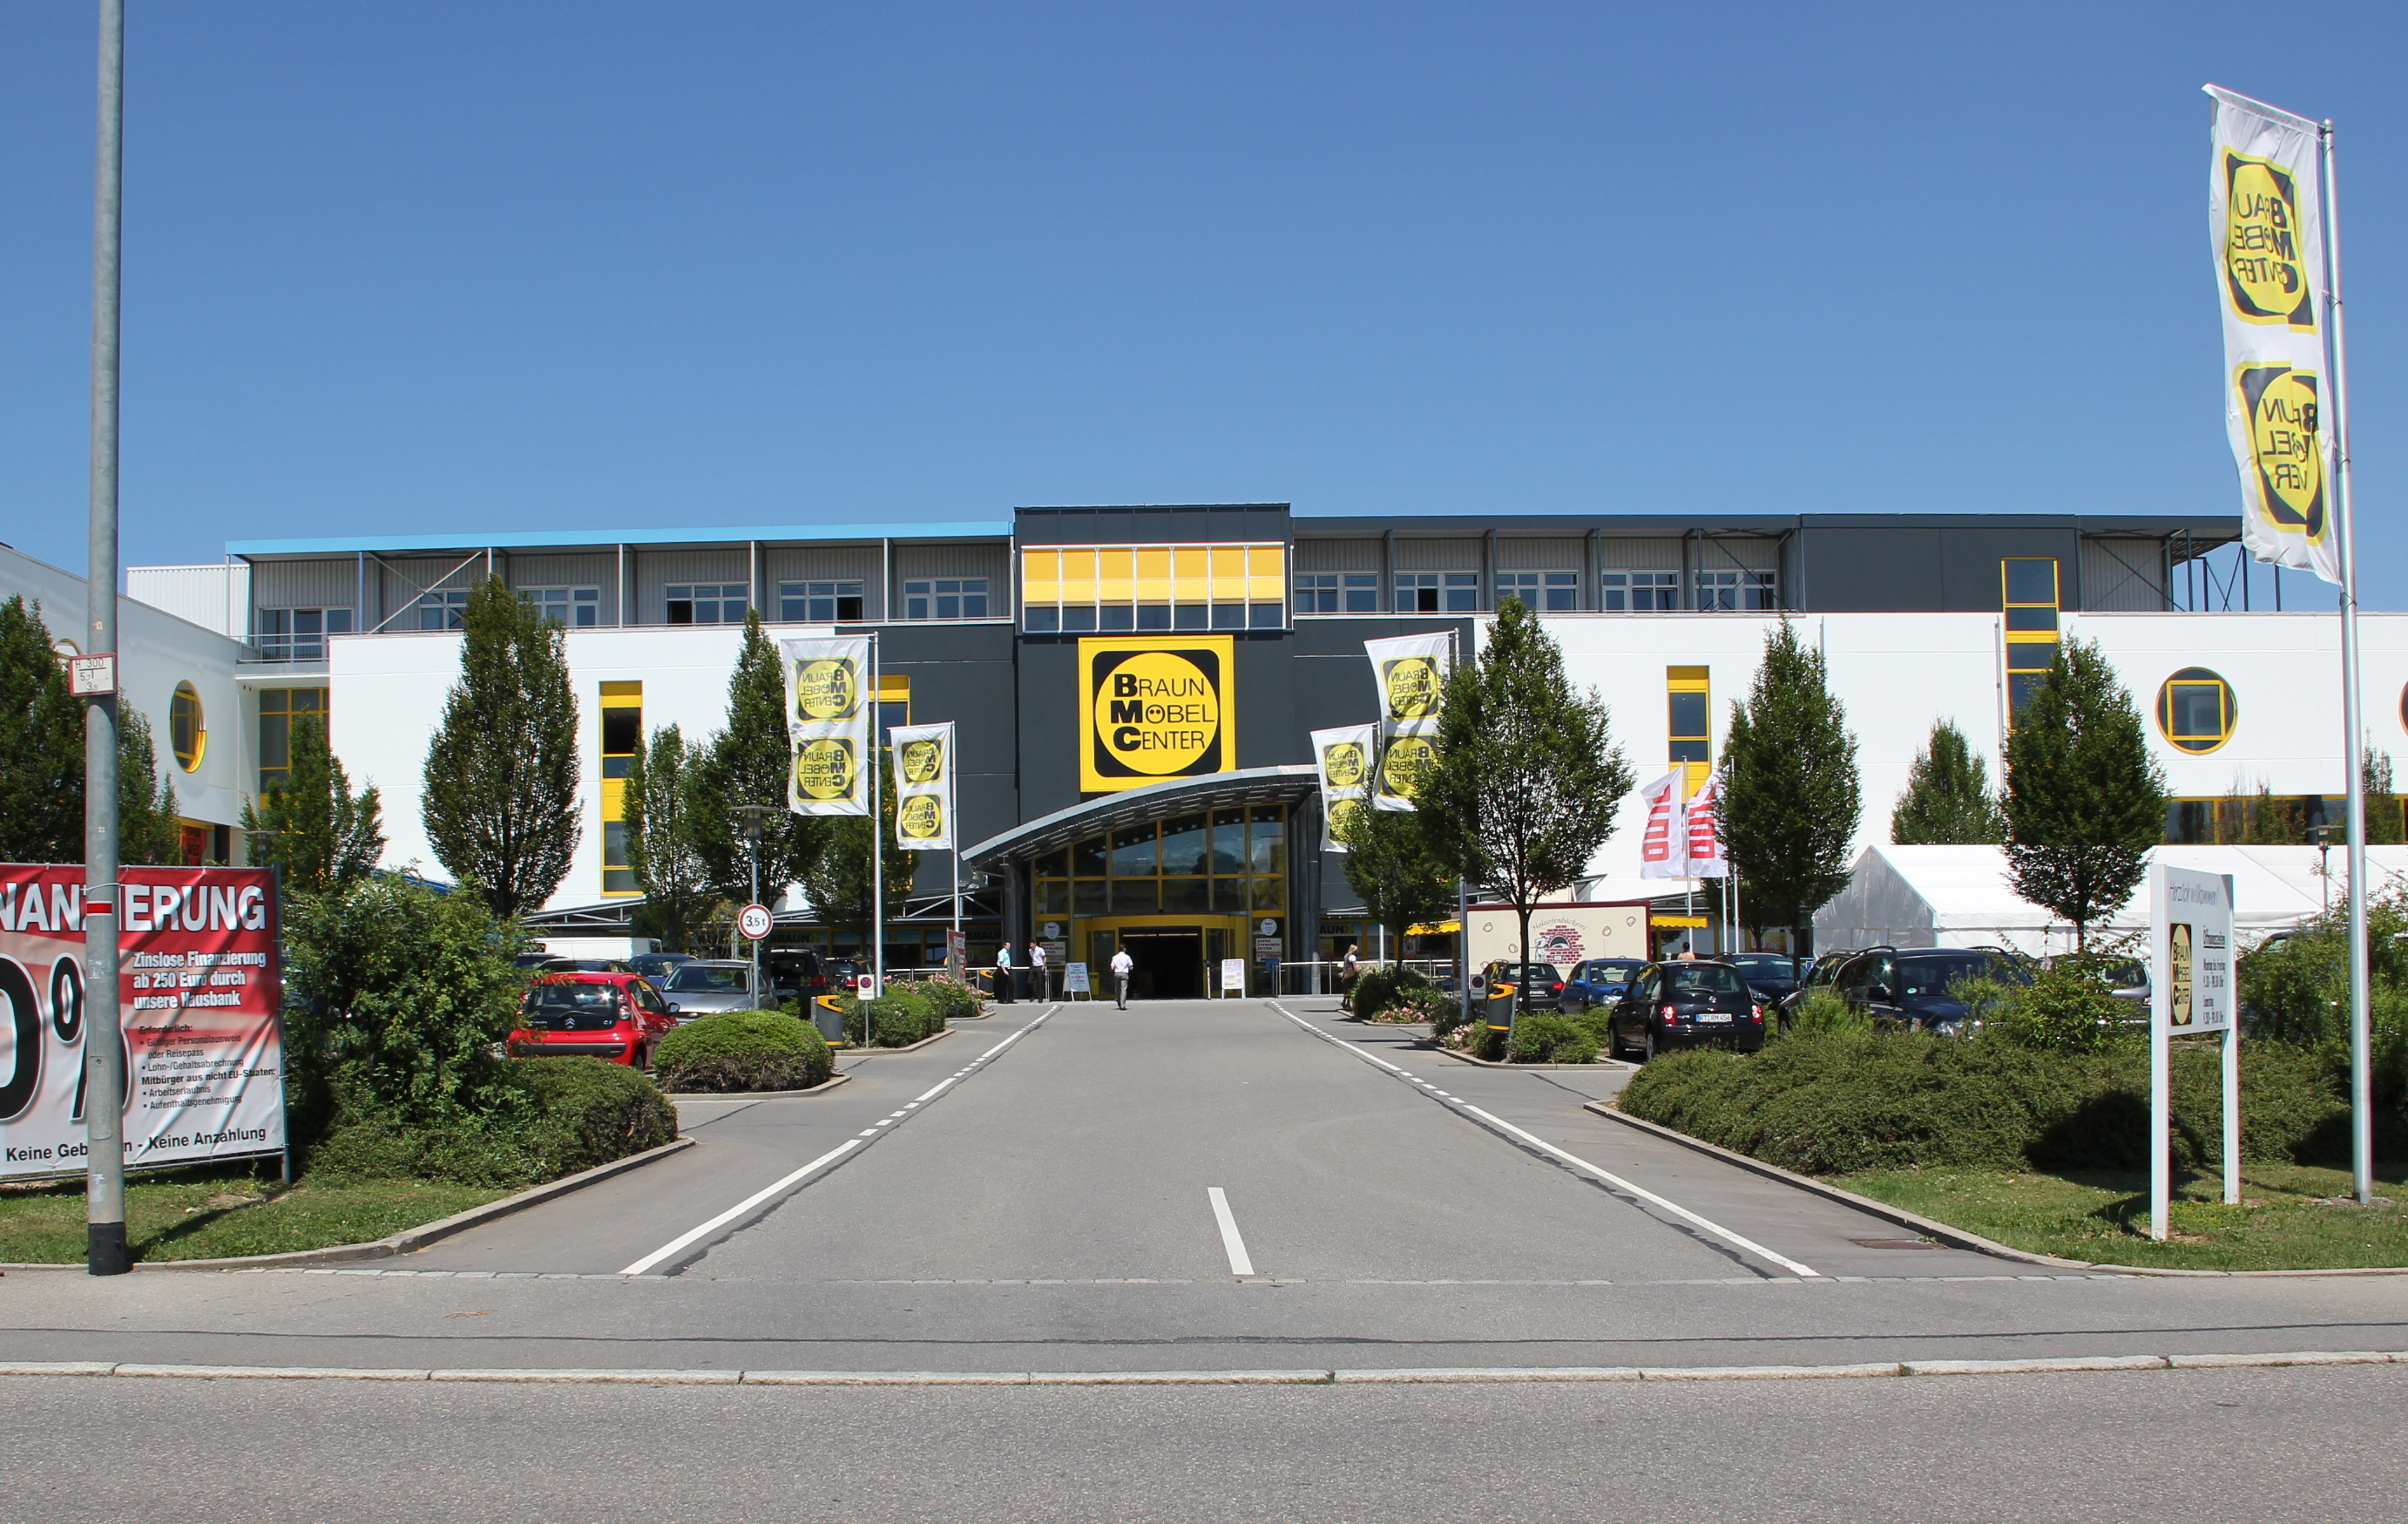 Braun Möbel Center in Reutlingen